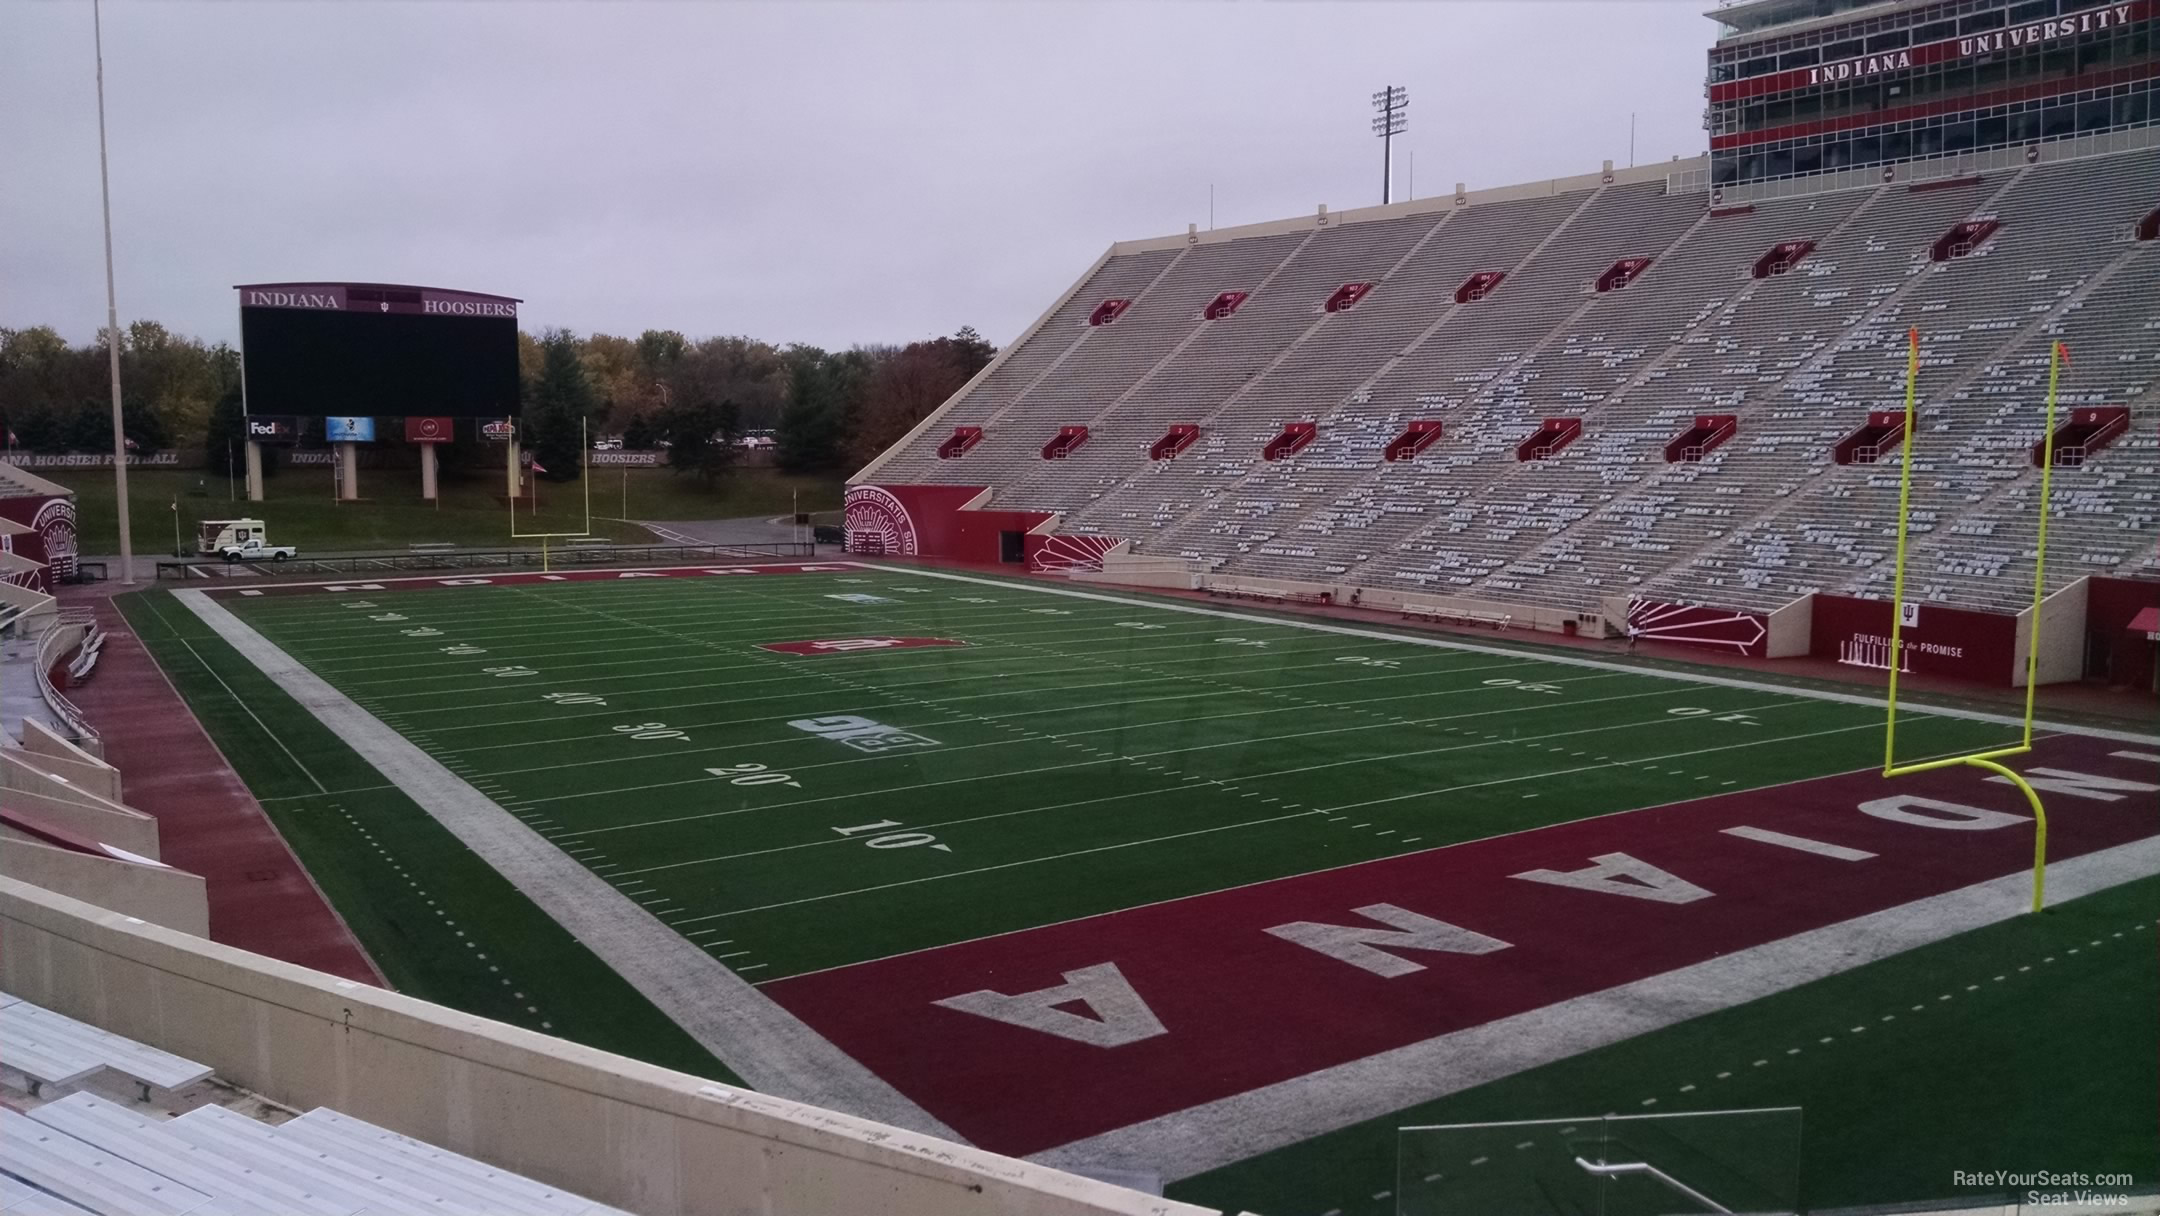 Seat View for Memorial Stadium - IN Section 20, Row 30